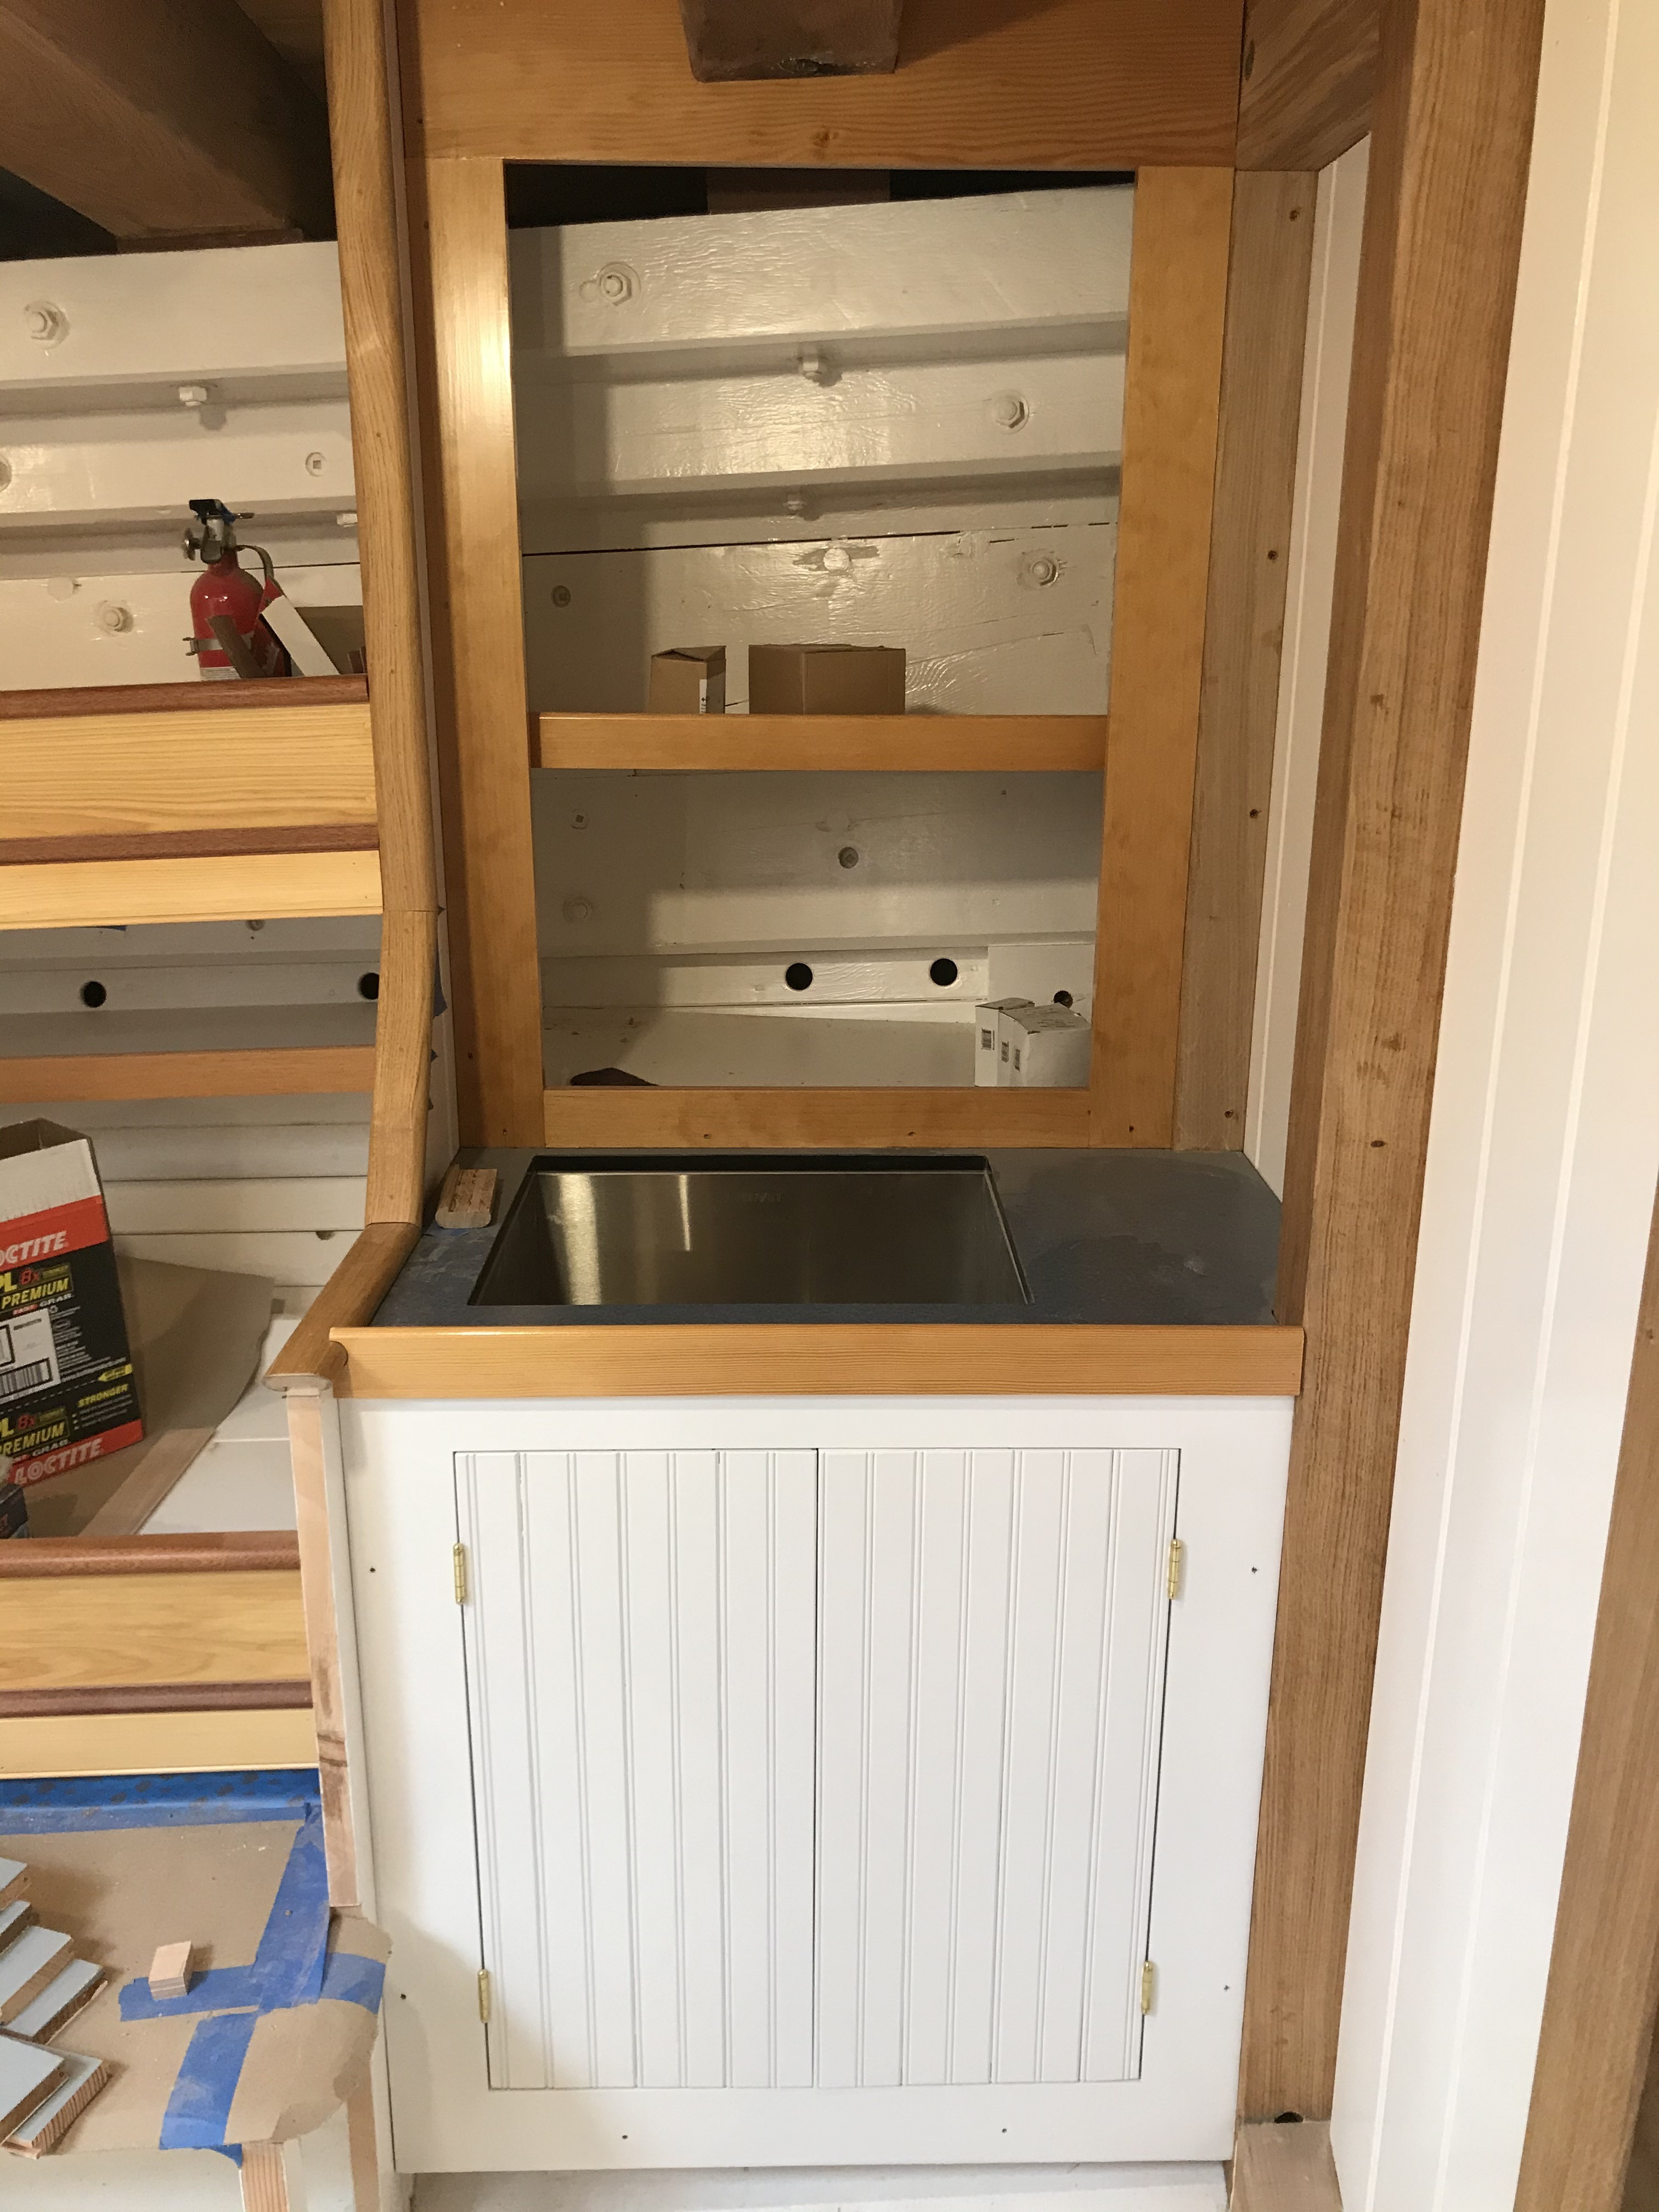 Just forward of the bunks along the port side is a utility sink and cabinet space.  Fiddles made of douglas fir and cabinetry of heartwood pine, every corner of this ship is turning out beautifully.